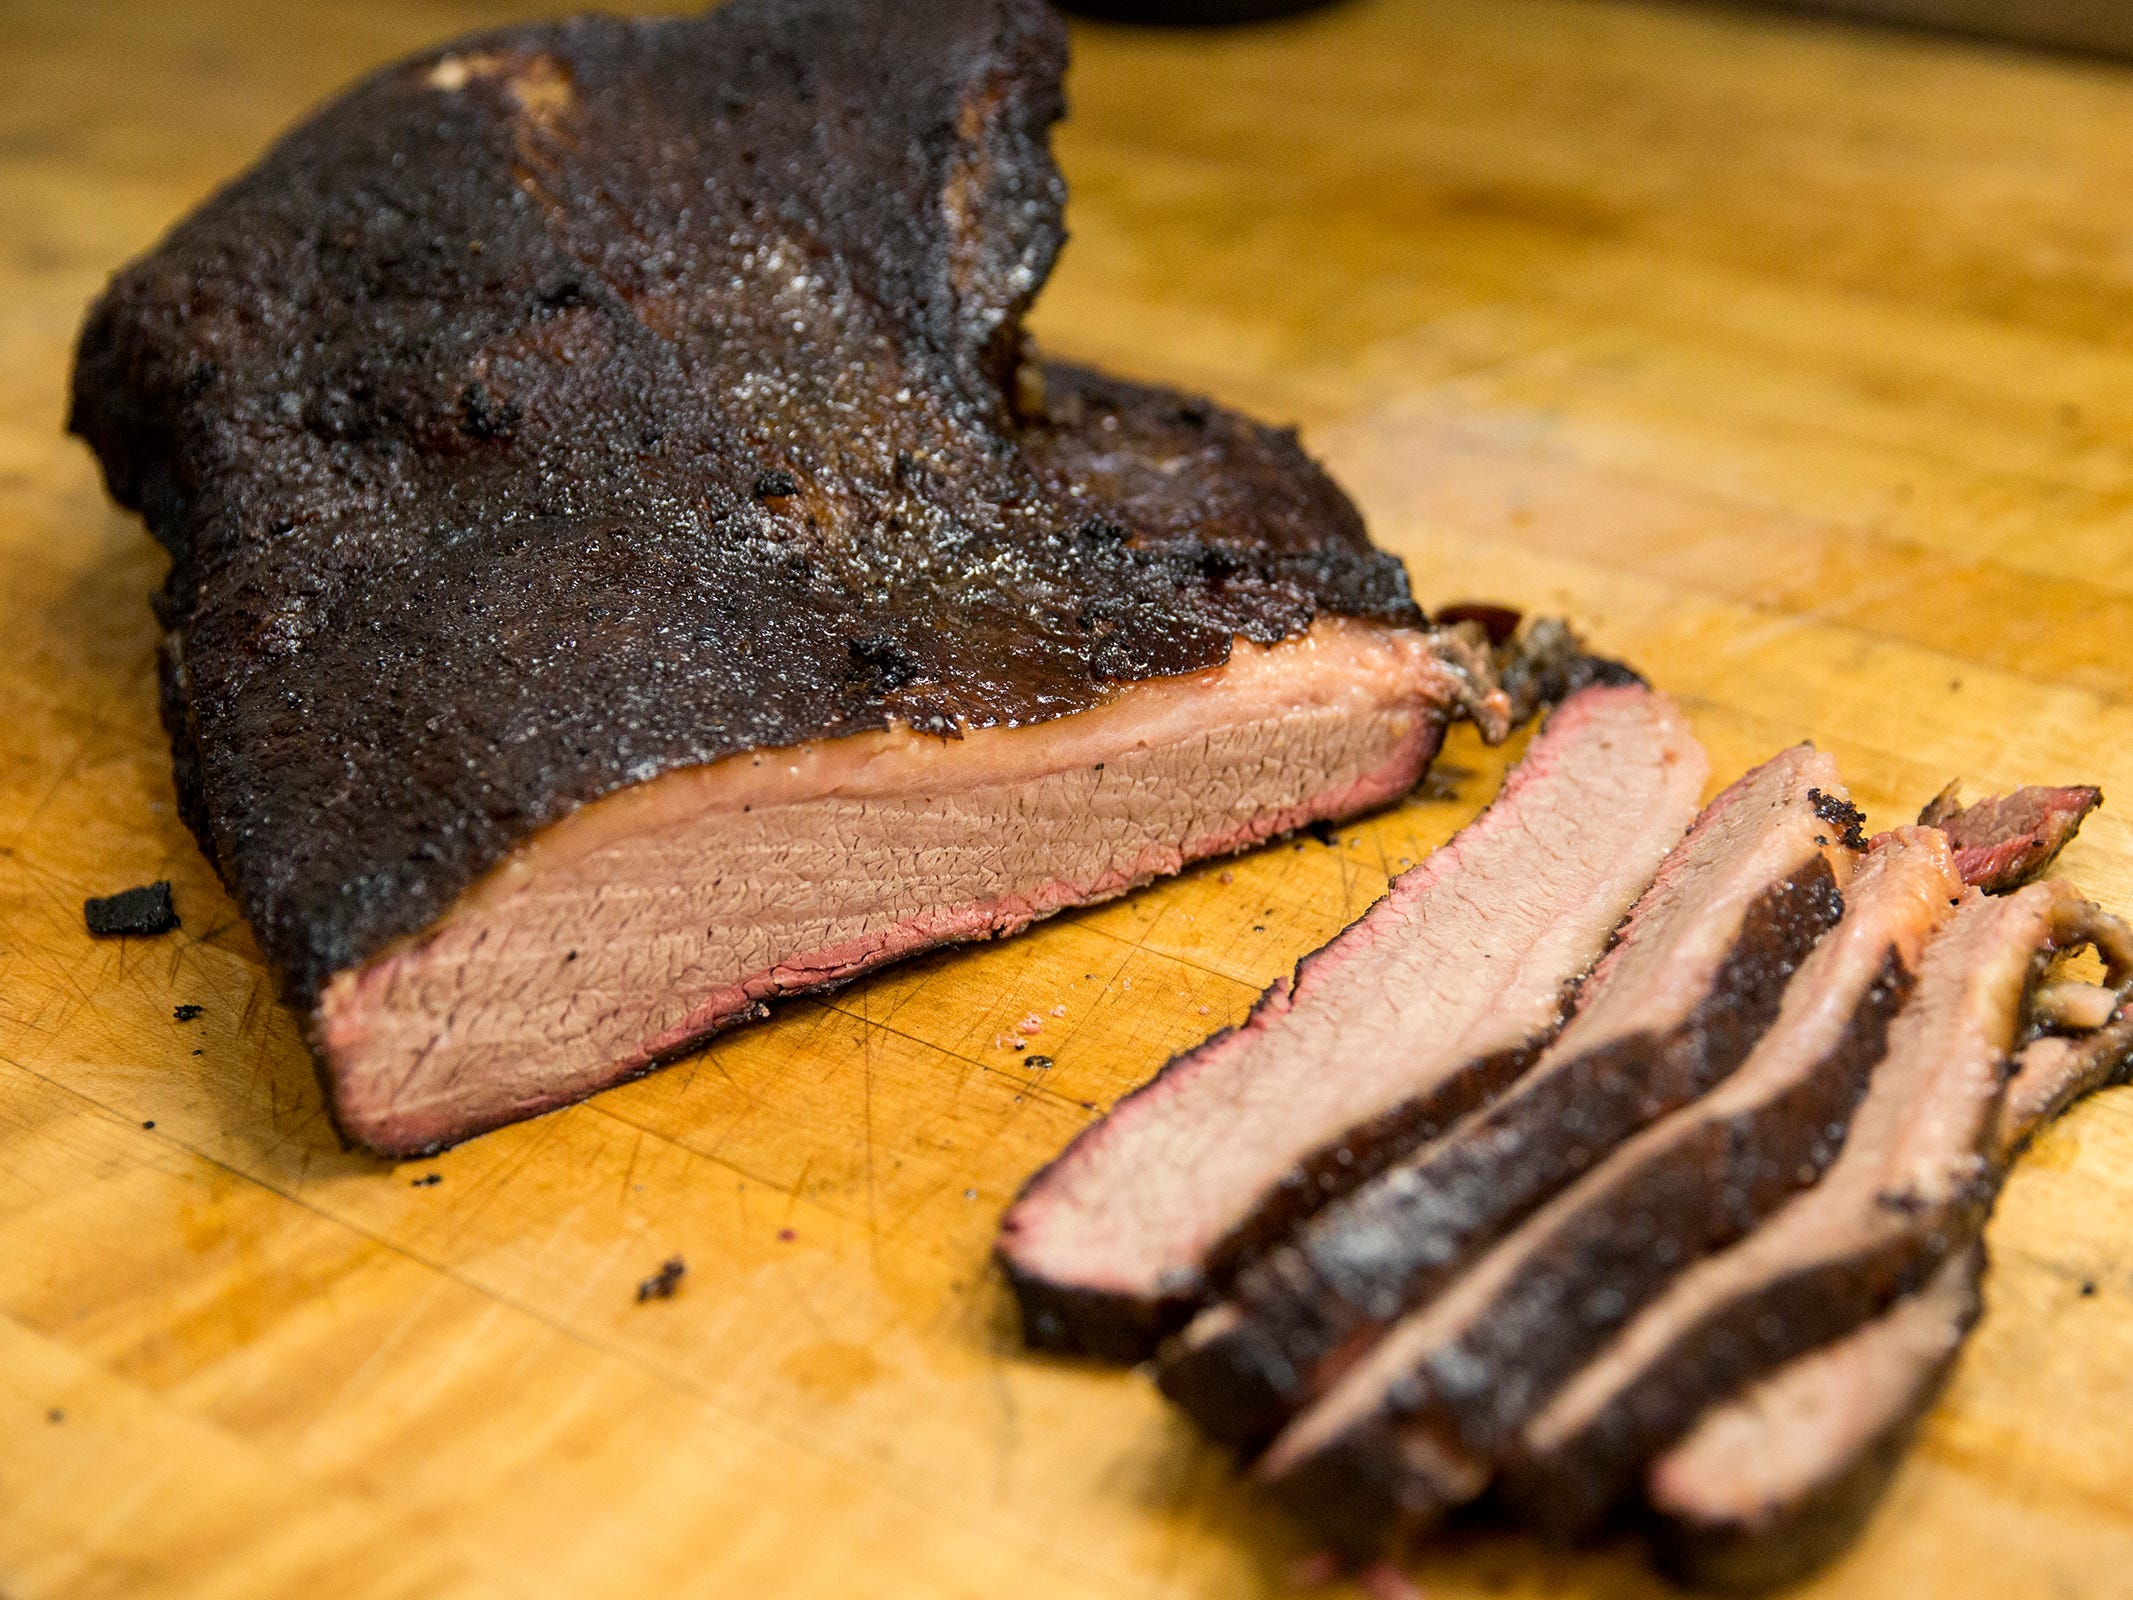 Brisket at Santiam Brewing in Salem on Wednesday, Jan. 2, 2019. The barbecue menu will be offered Thursday through Sunday.